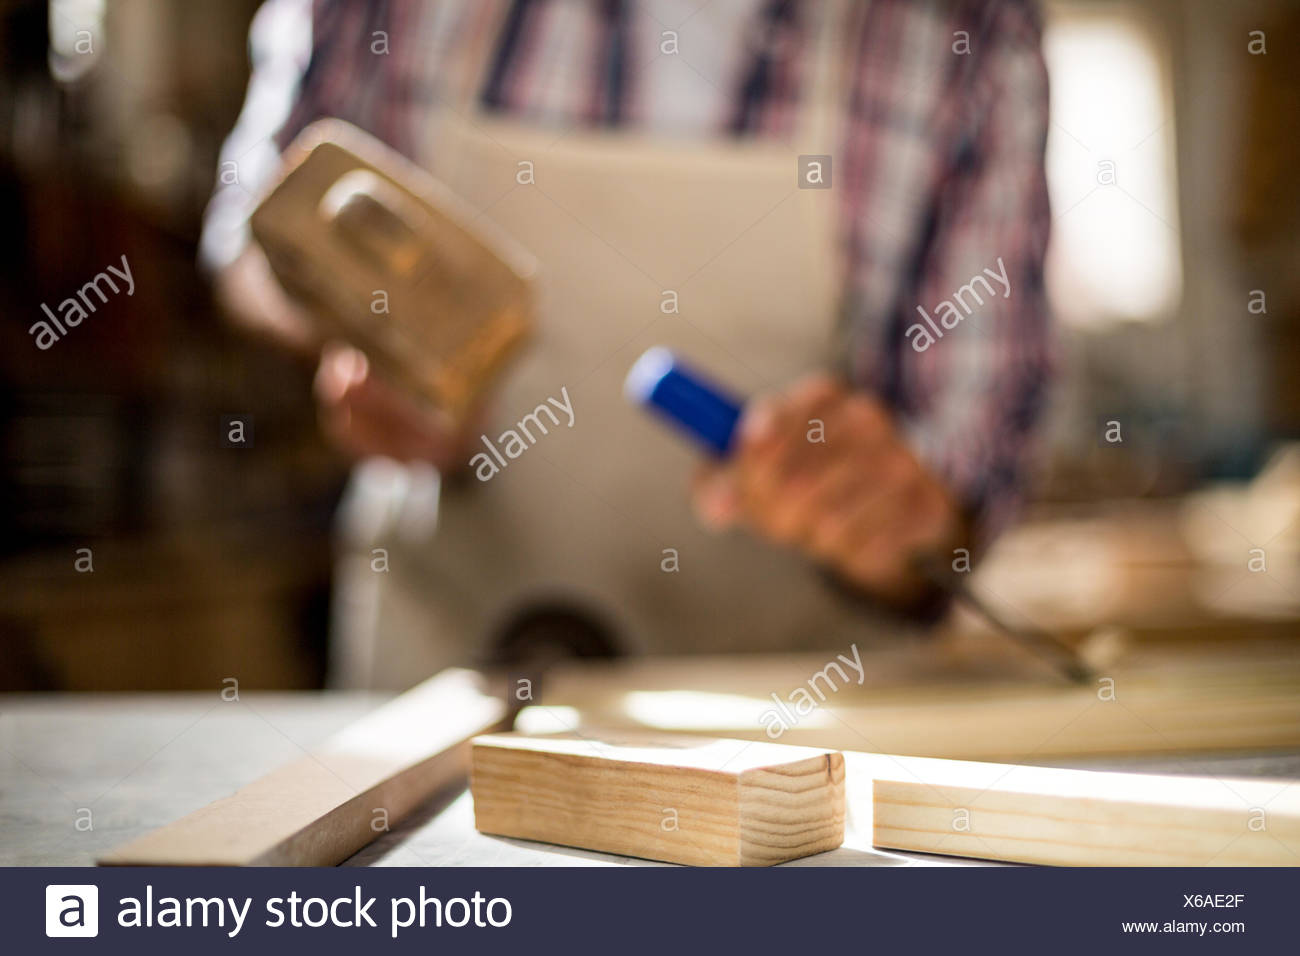 Close-up of wooden plank on workbench - Stock Image